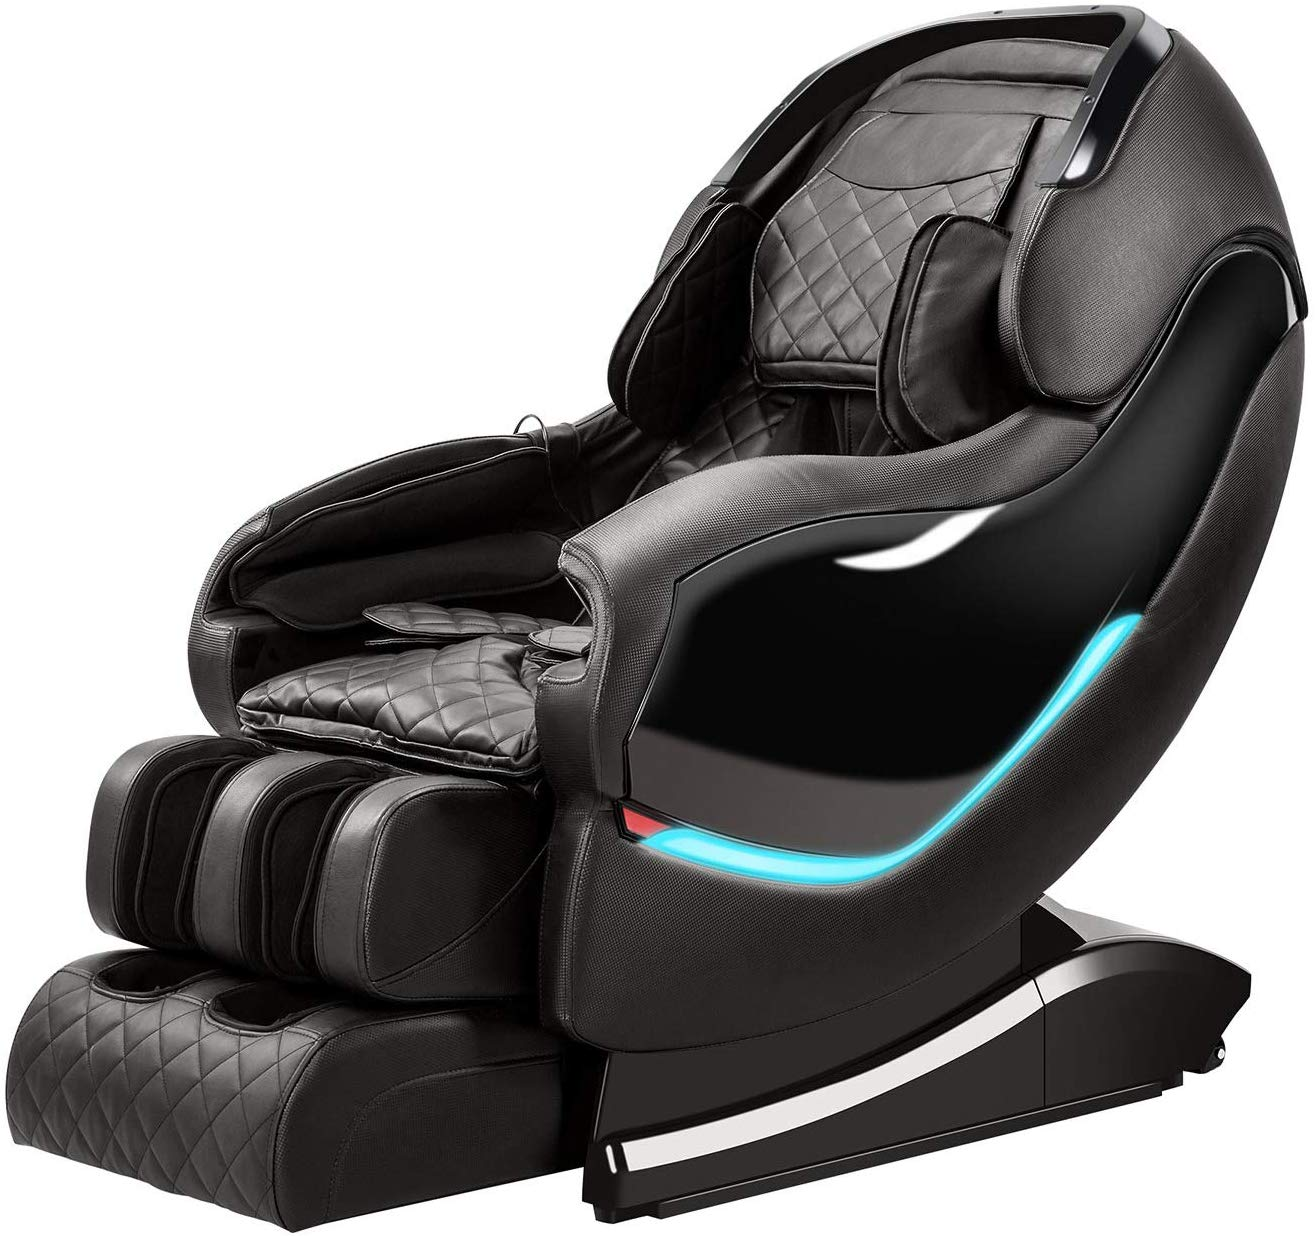 Ootori RL900 Massage Chair